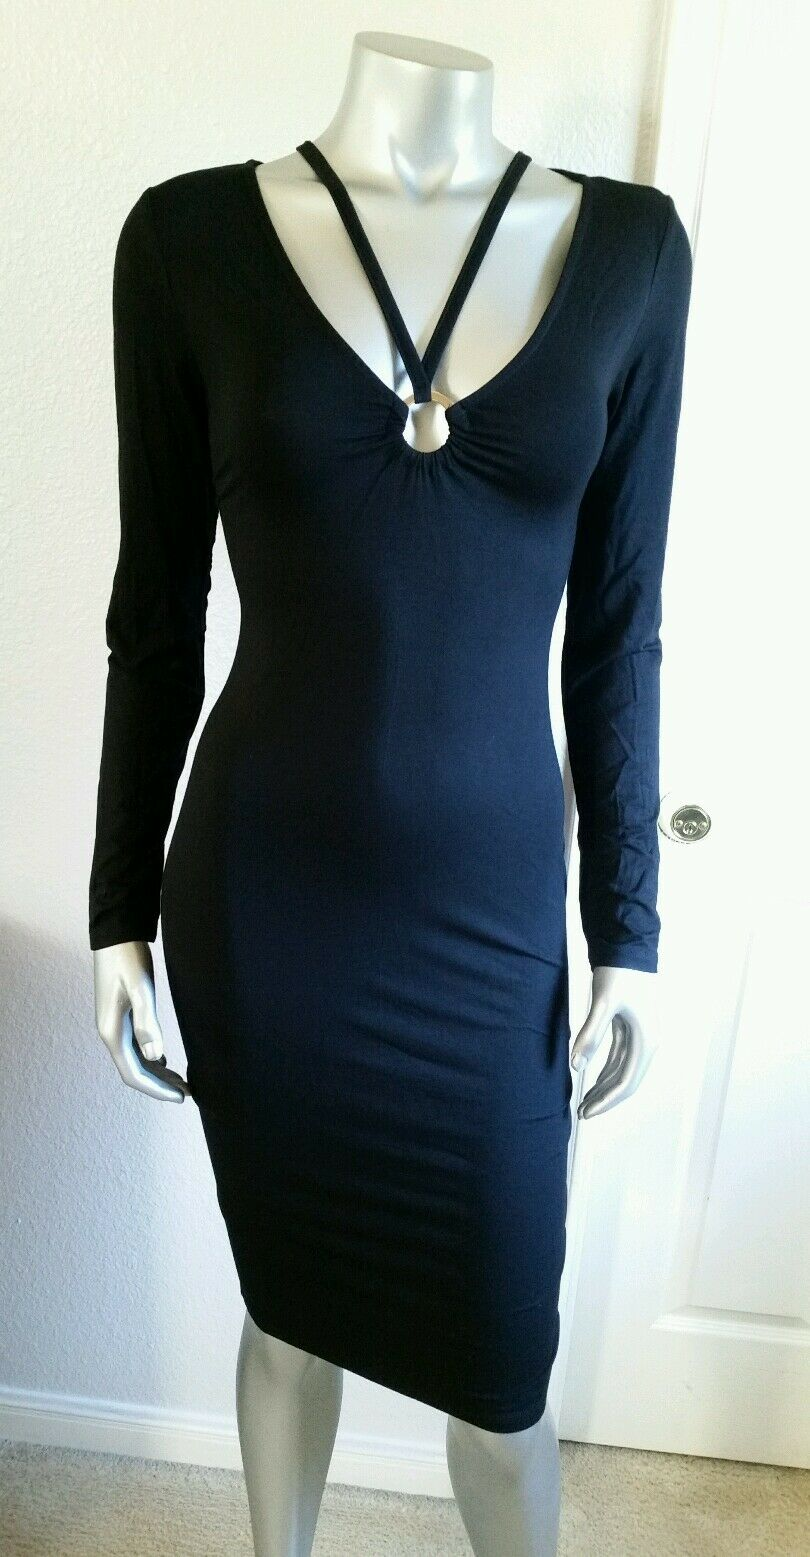 100 % AUTHENTIC NWT BEBE AMBER ALANNA RING ANS STRAP  DRESS SIZE SMALL